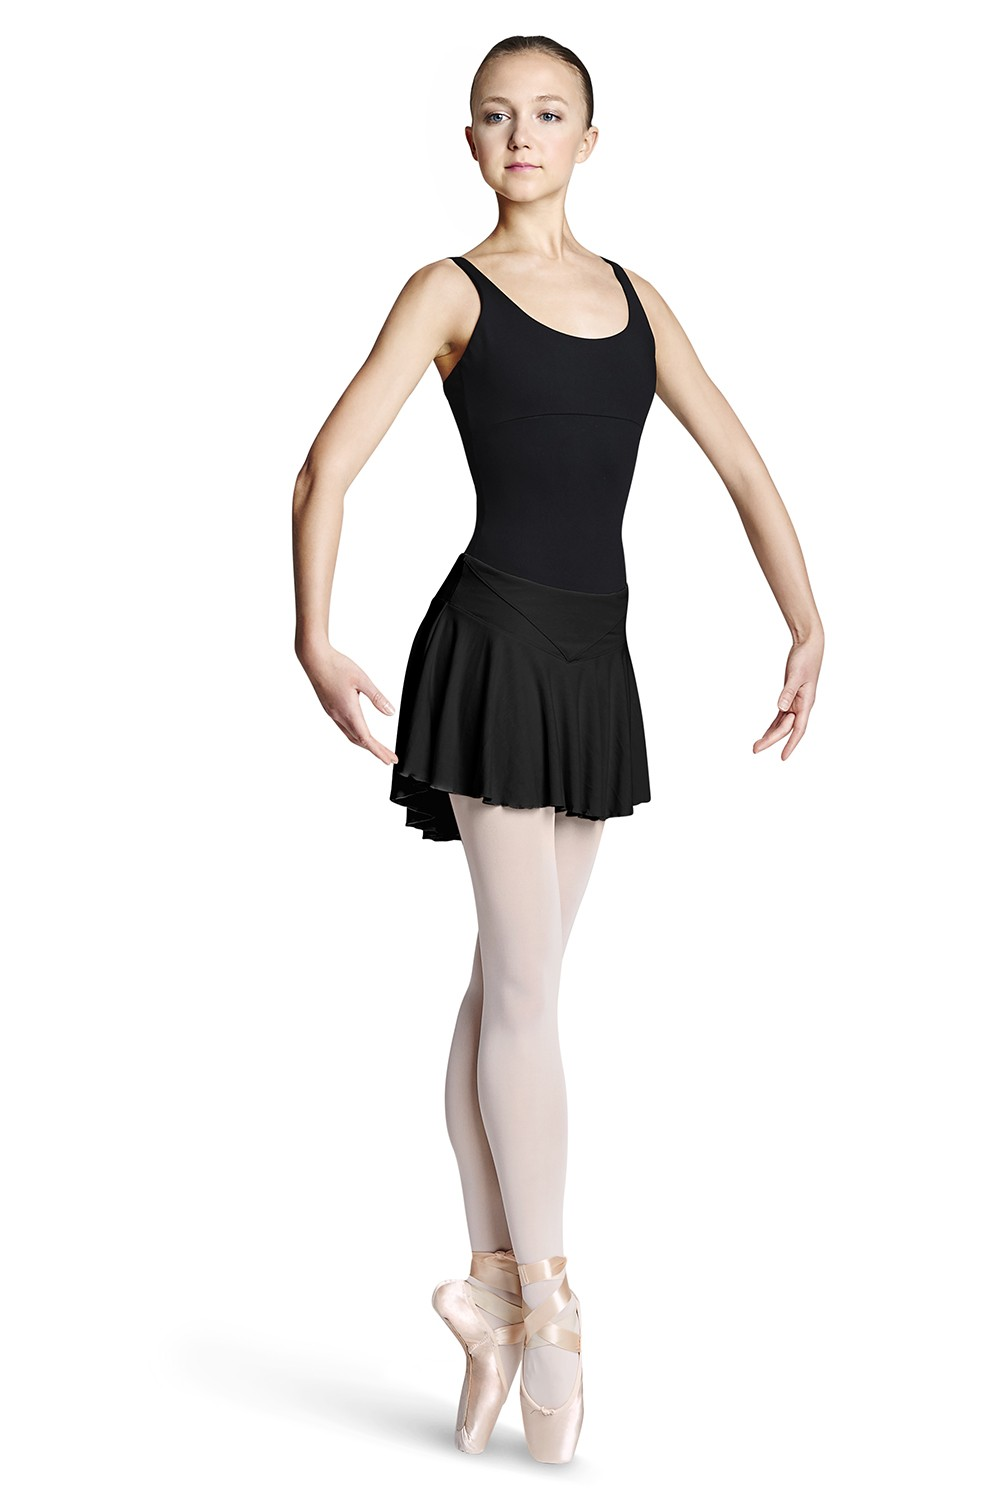 Panelled W/bnd Skirt Women's Dance Skirts